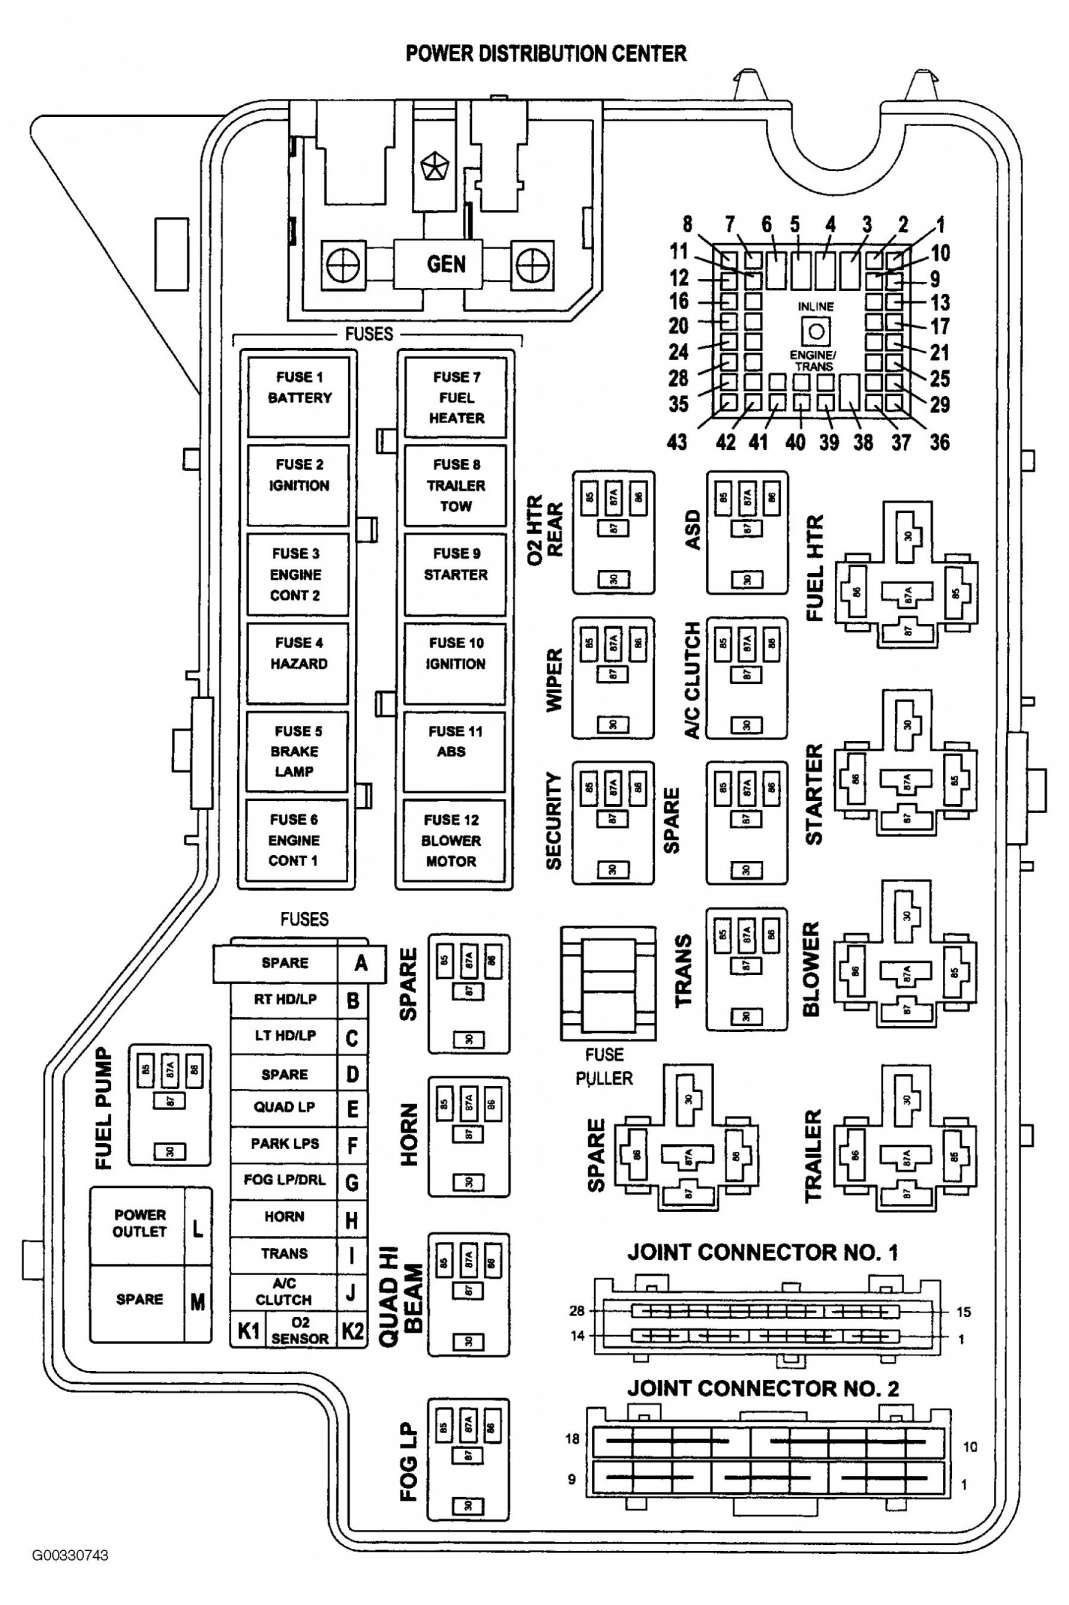 17 Dodge Ram Truck Fuse Box Diagram